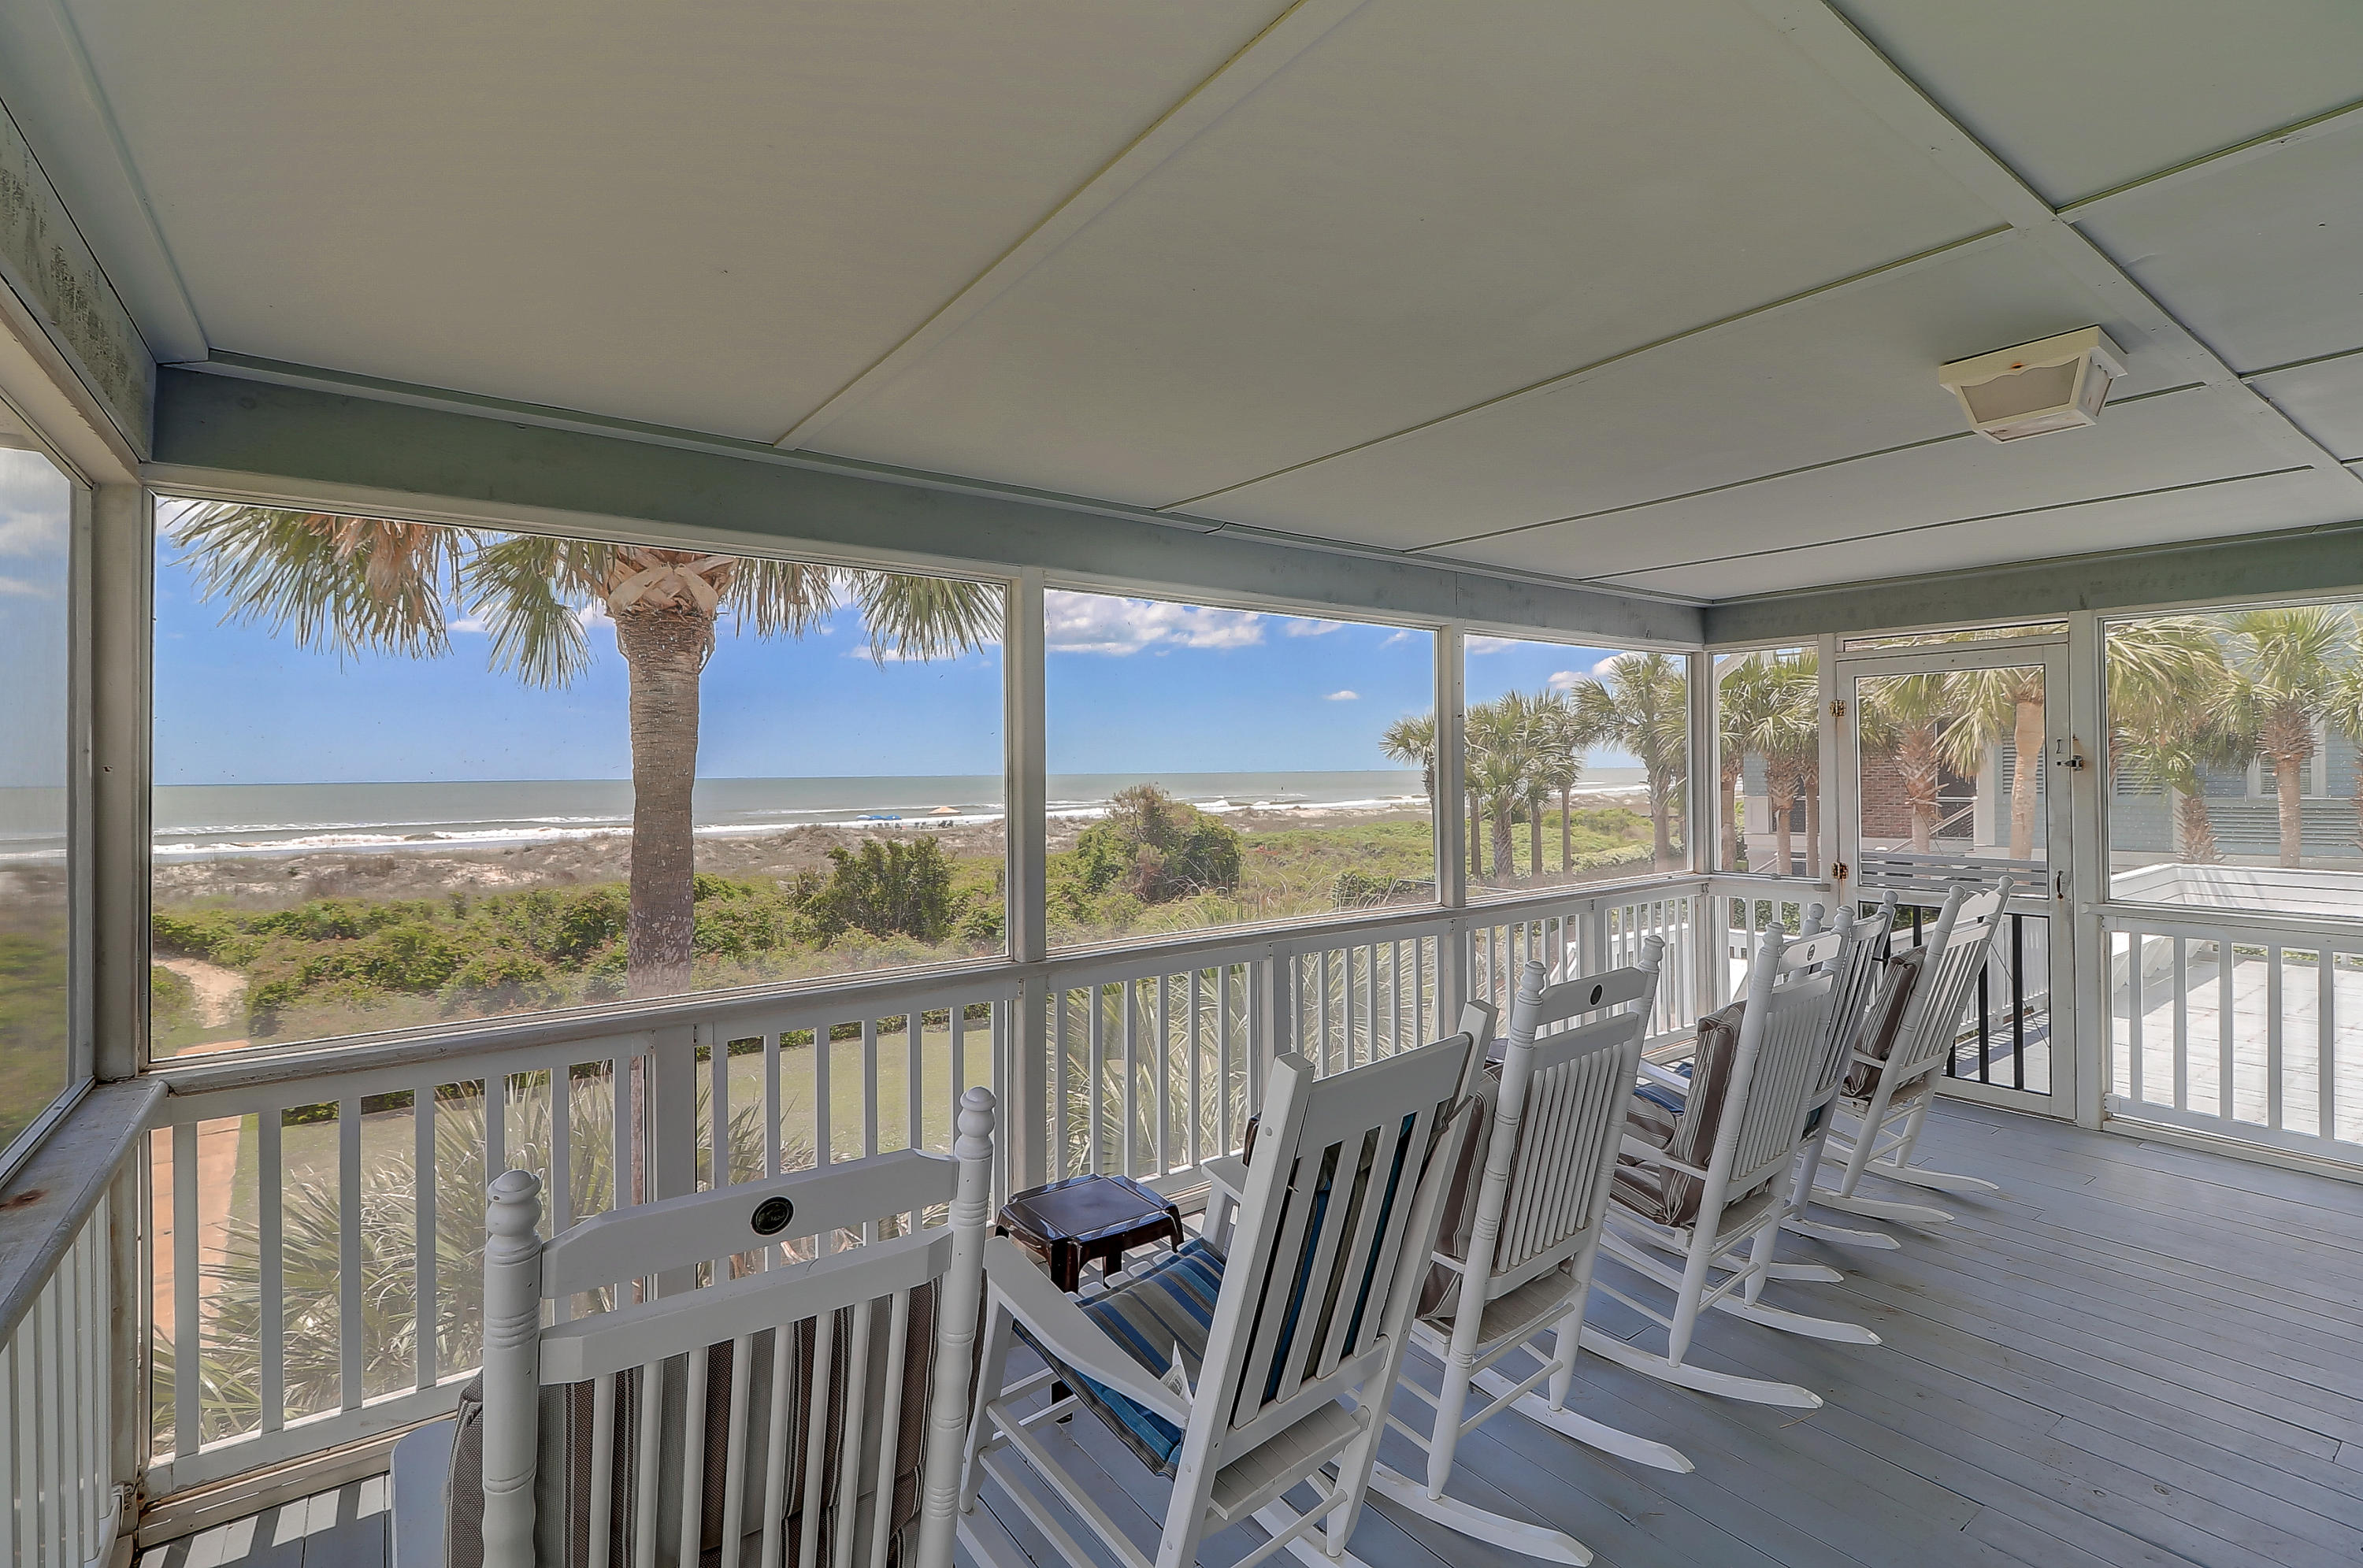 Isle of Palms Homes For Sale - 1 47th (1/13th), Isle of Palms, SC - 51